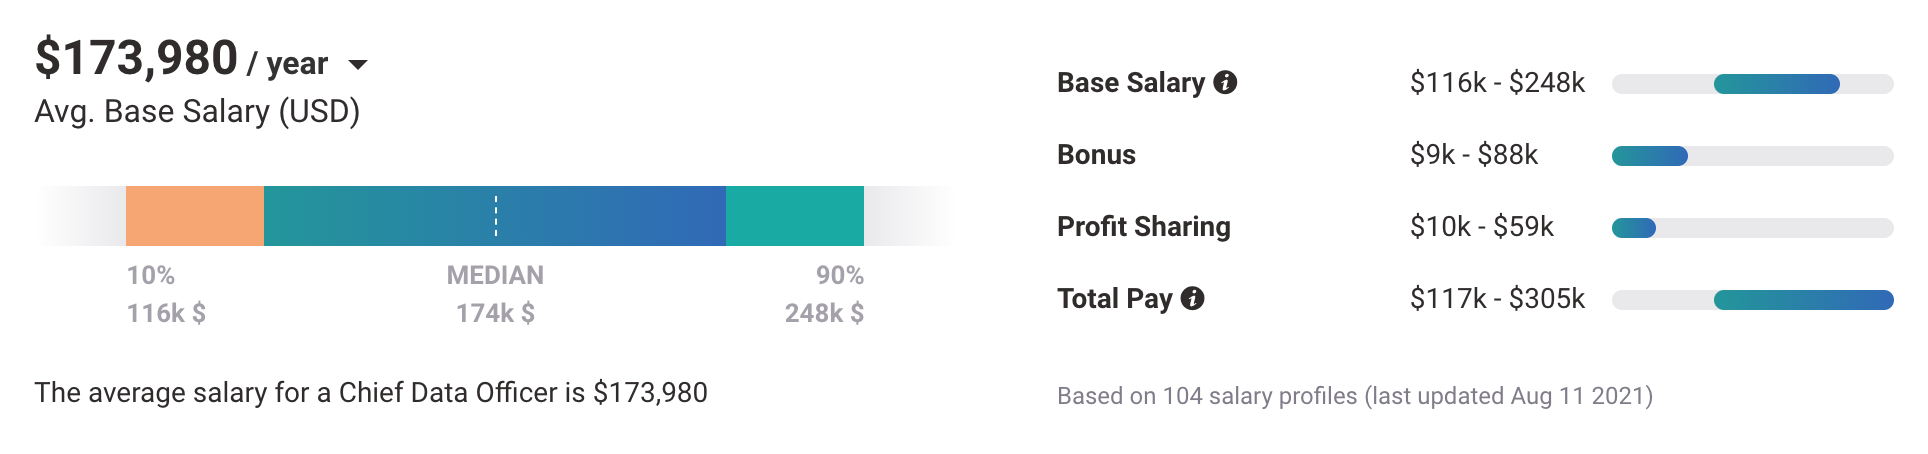 director of data science salary